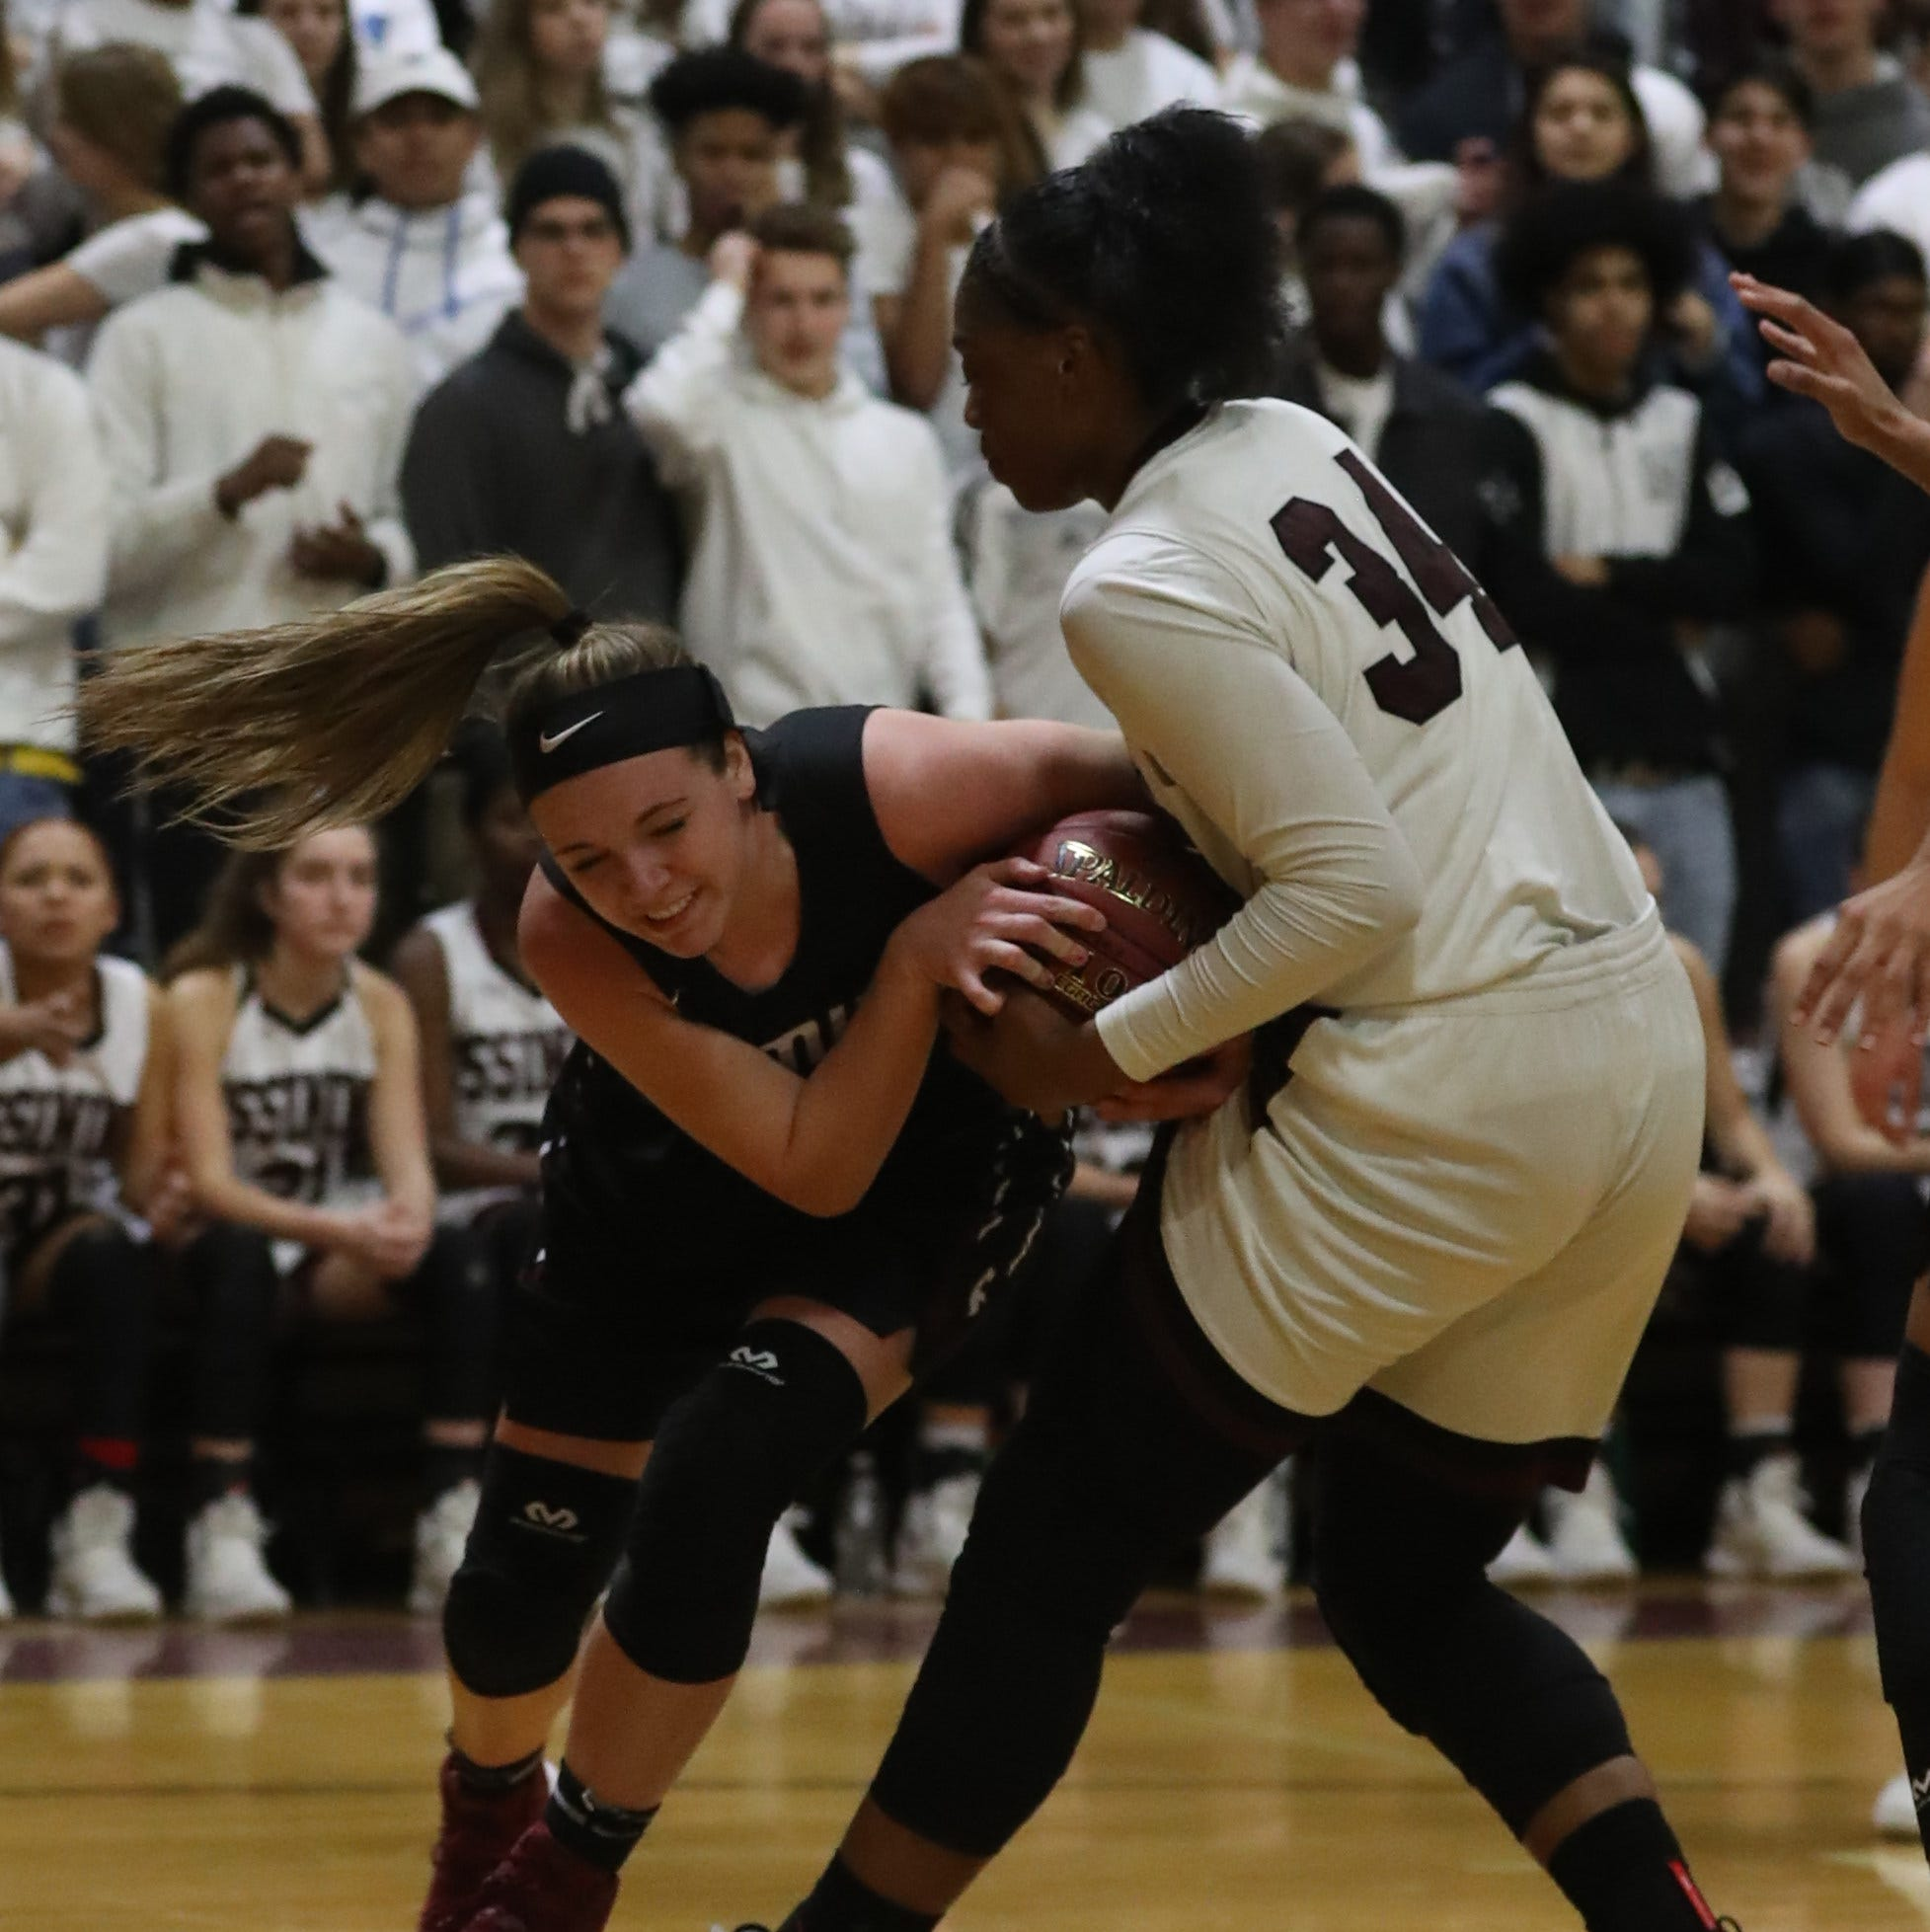 Ossining ends Elmira girls' season for third straight year in Class AA state tournament